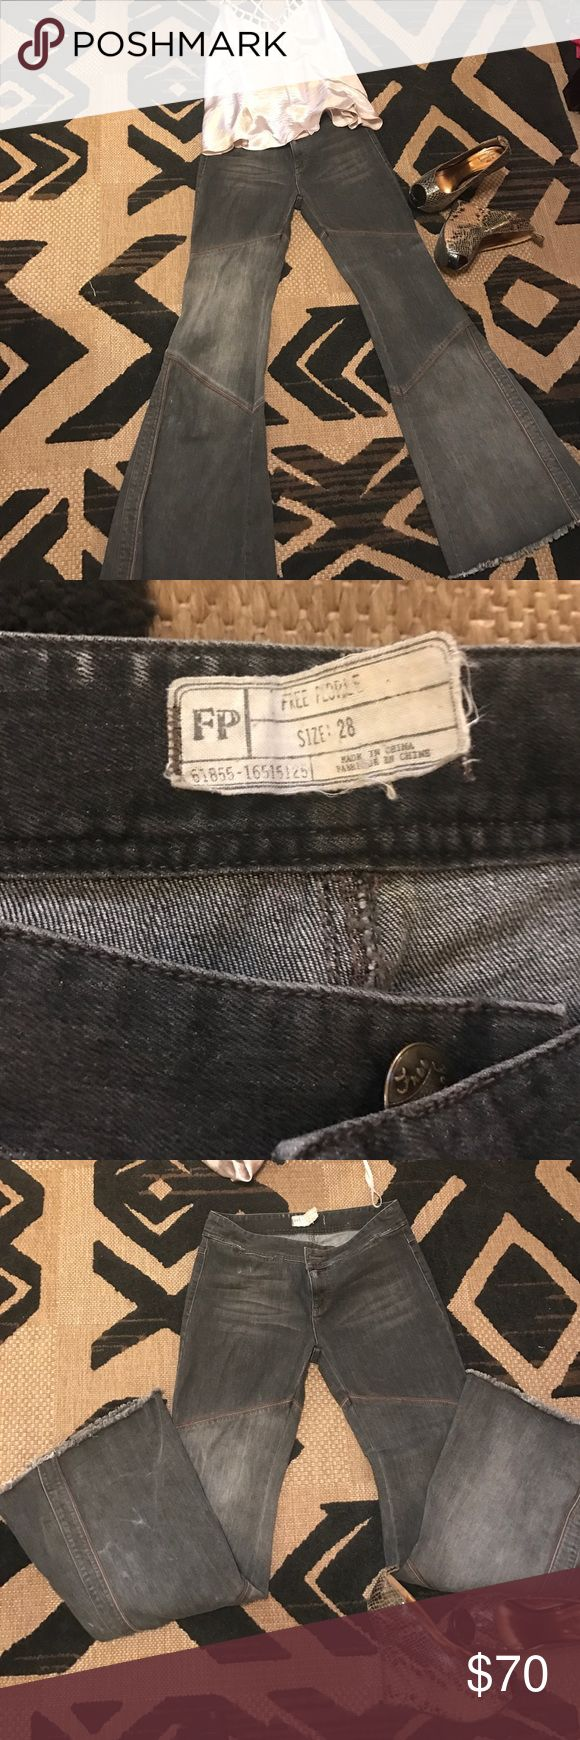 Free People black/Grey w/suede design 28/34 These beauties are a sassy kind of flares with suede tooling in between some of the seams. Truly unique! Free People Jeans Flare & Wide Leg